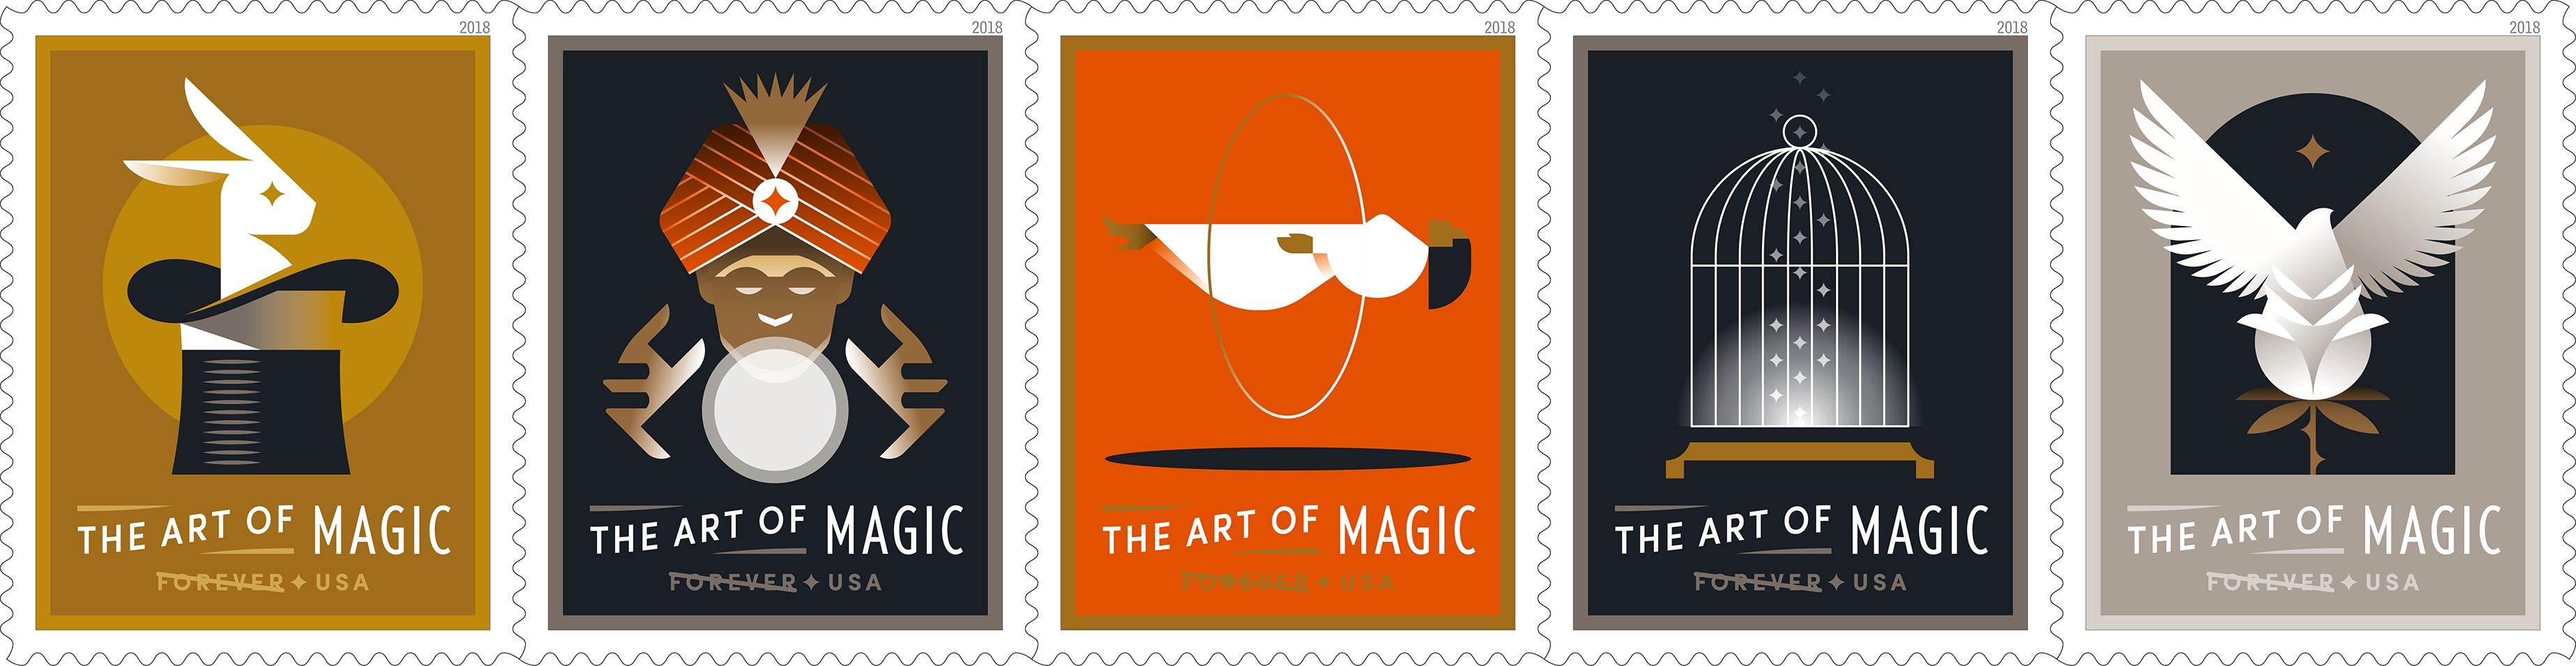 The Art of Magic: The Postal Service celebrates the art of magic with this pane of 20 stamps featuring digital illustrations of five classic tricks magicians use to amaze and delight audiences: a rabbit in a hat (production), a fortune teller using a crystal ball (prediction), a woman floating in the air (levitation), an empty bird cage (vanishing), and a bird emerging from a flower (transformation). (USPS)